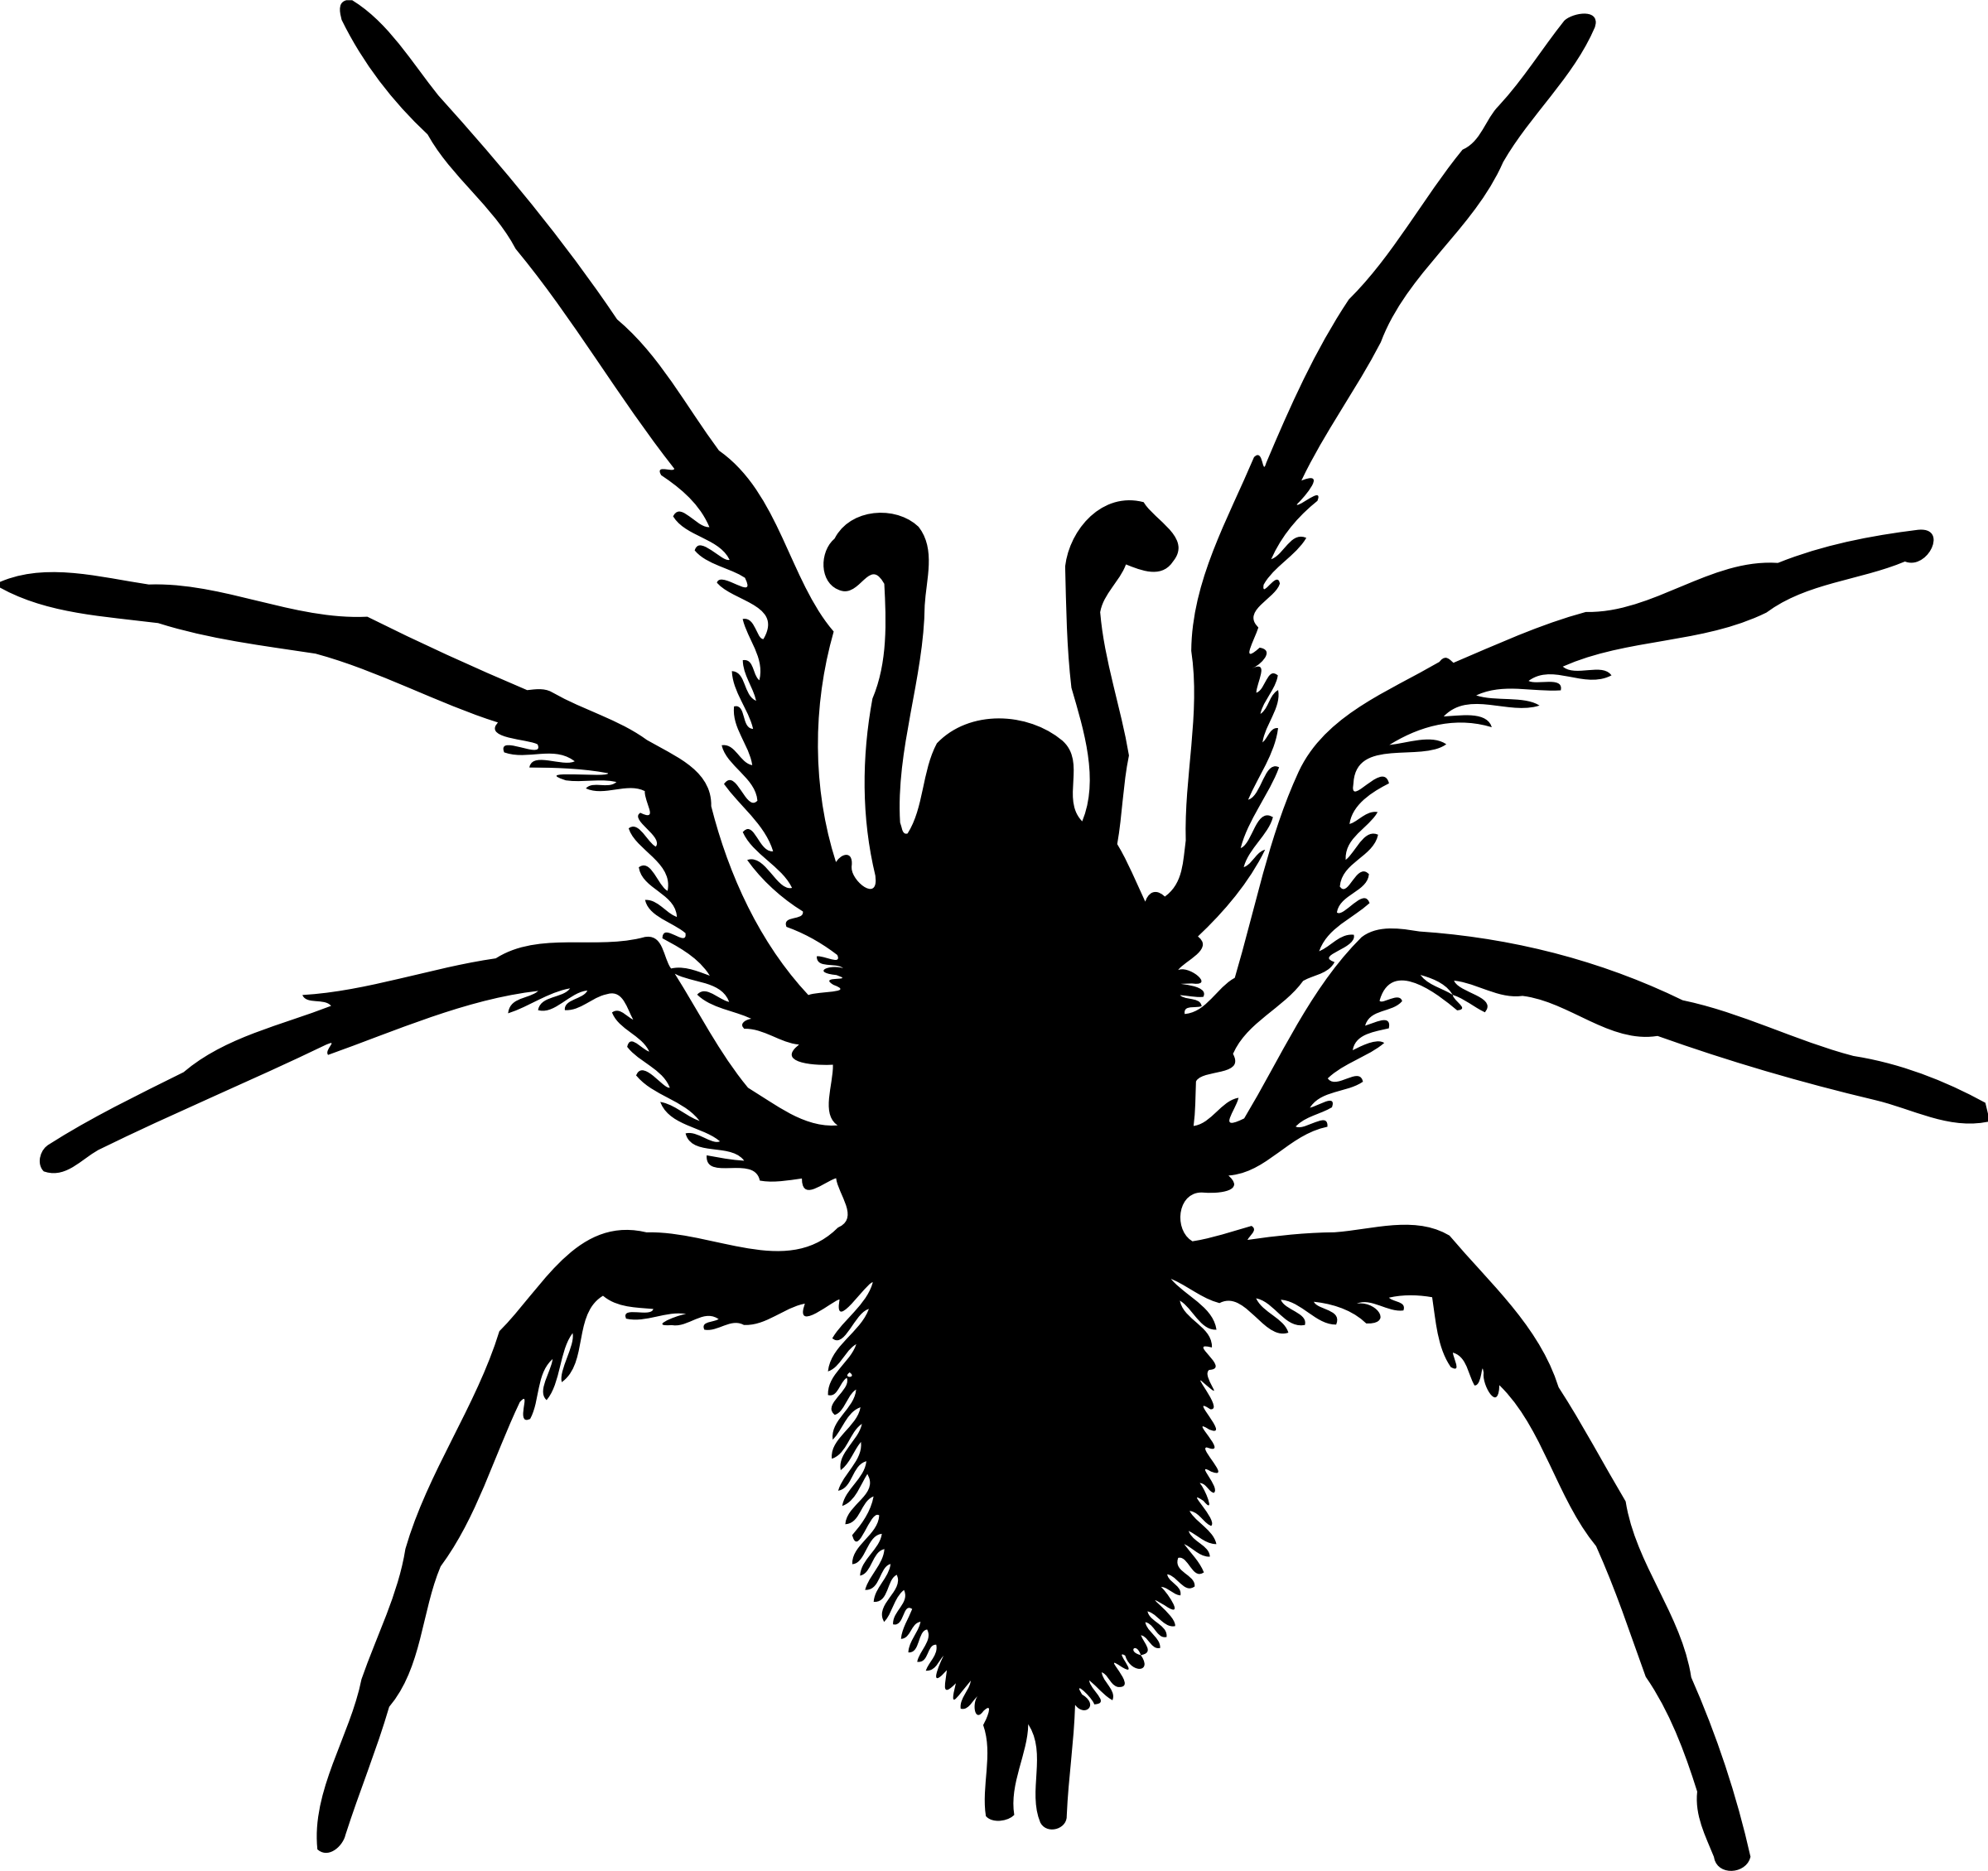 Spider Silhouette Vector File Image